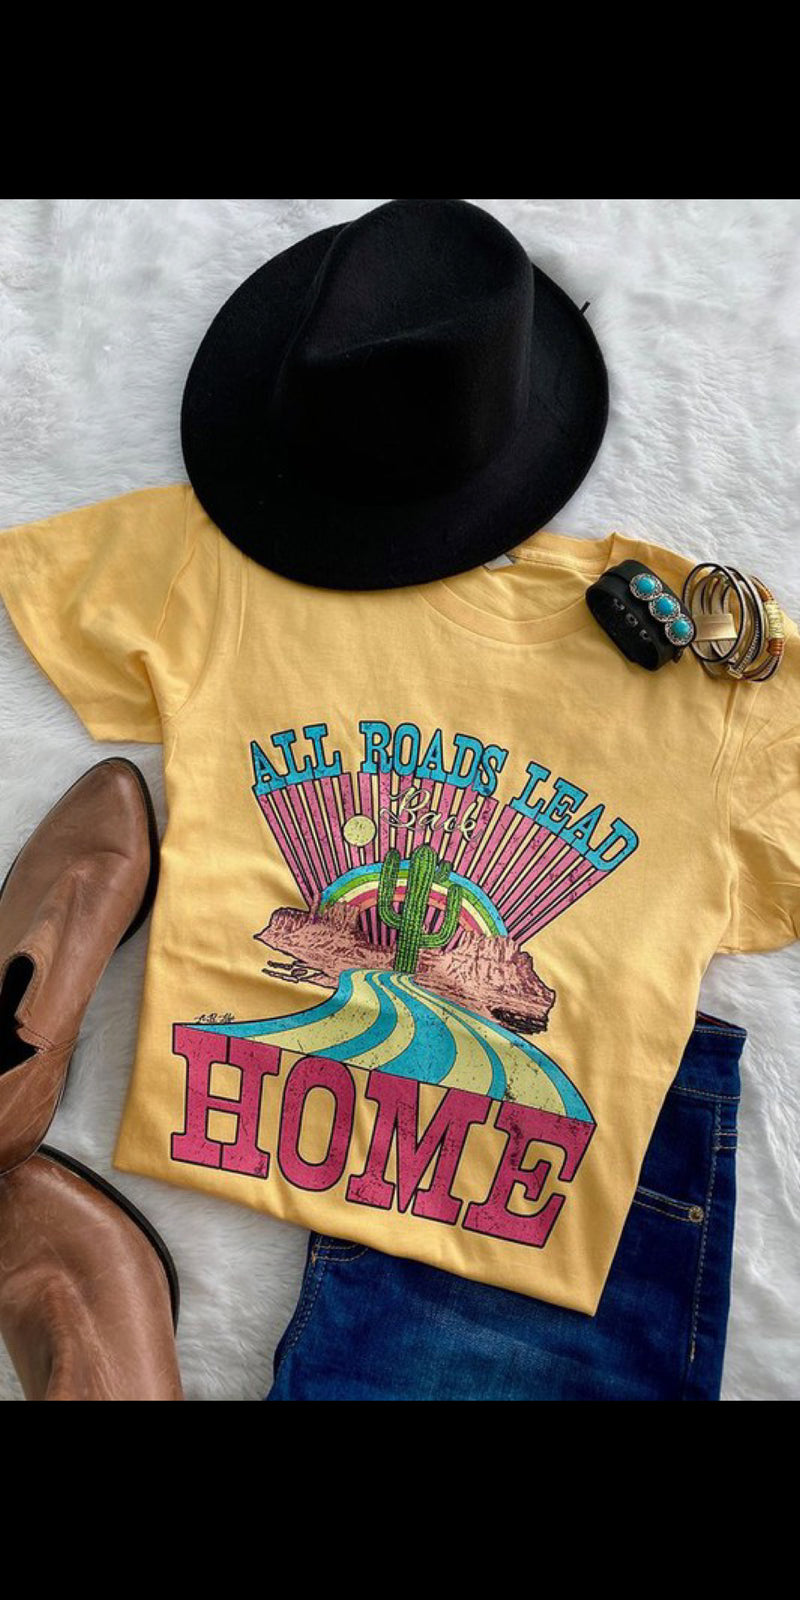 All Roads Lead Back Home Top - Also in Plus Size